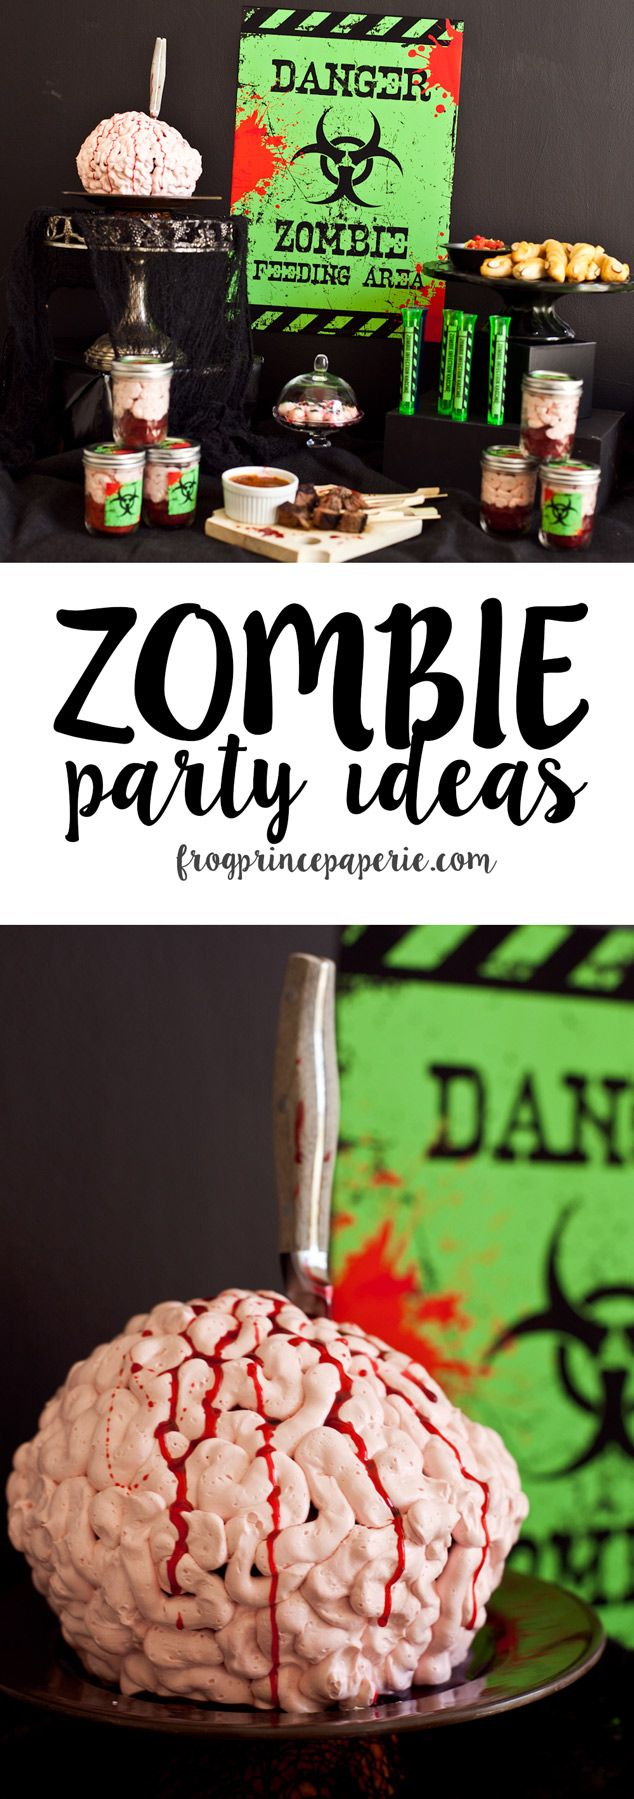 Best 25+ Walking dead free ideas on Pinterest | Season 5 walking ...